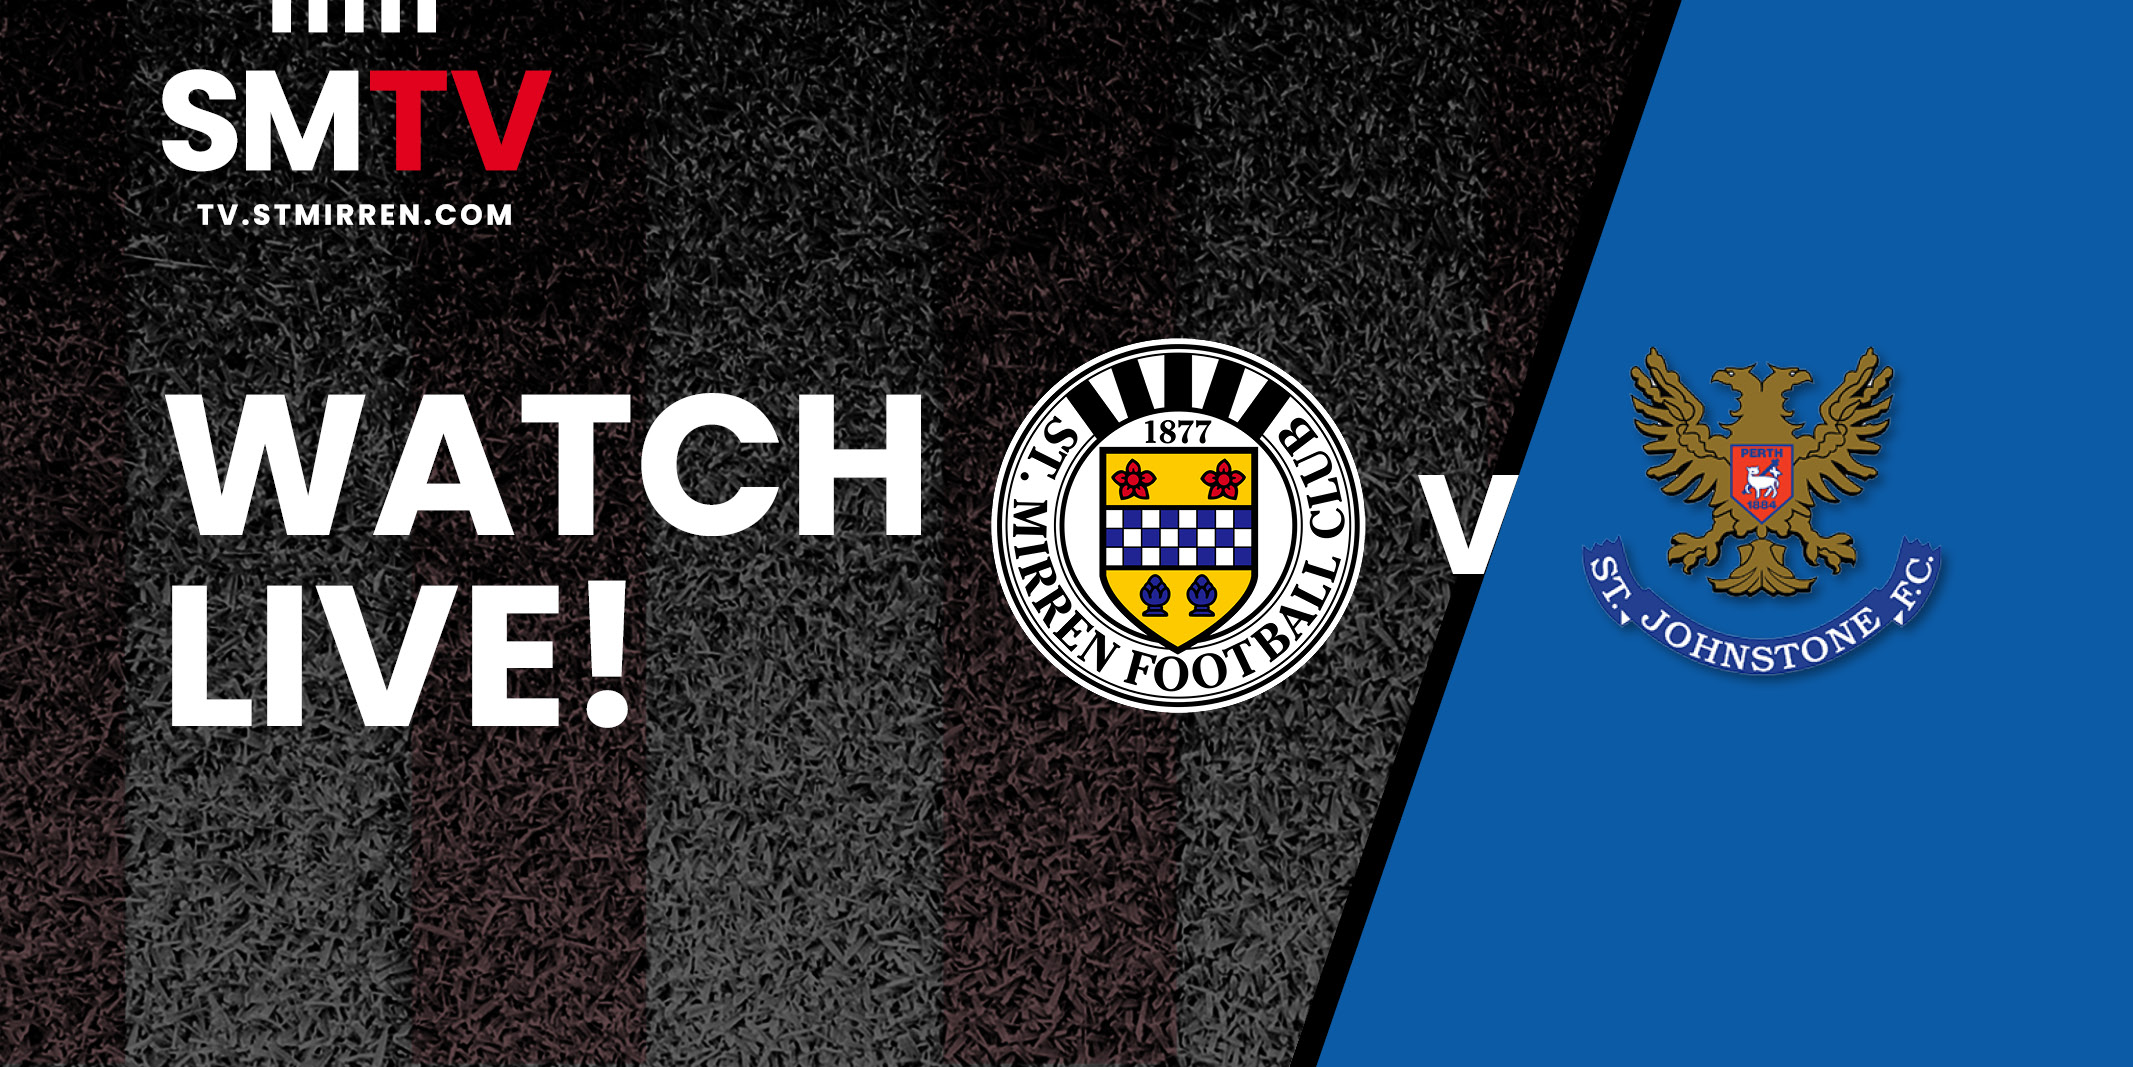 Up next: St Mirren v St Johnstone (19th Dec 2020)